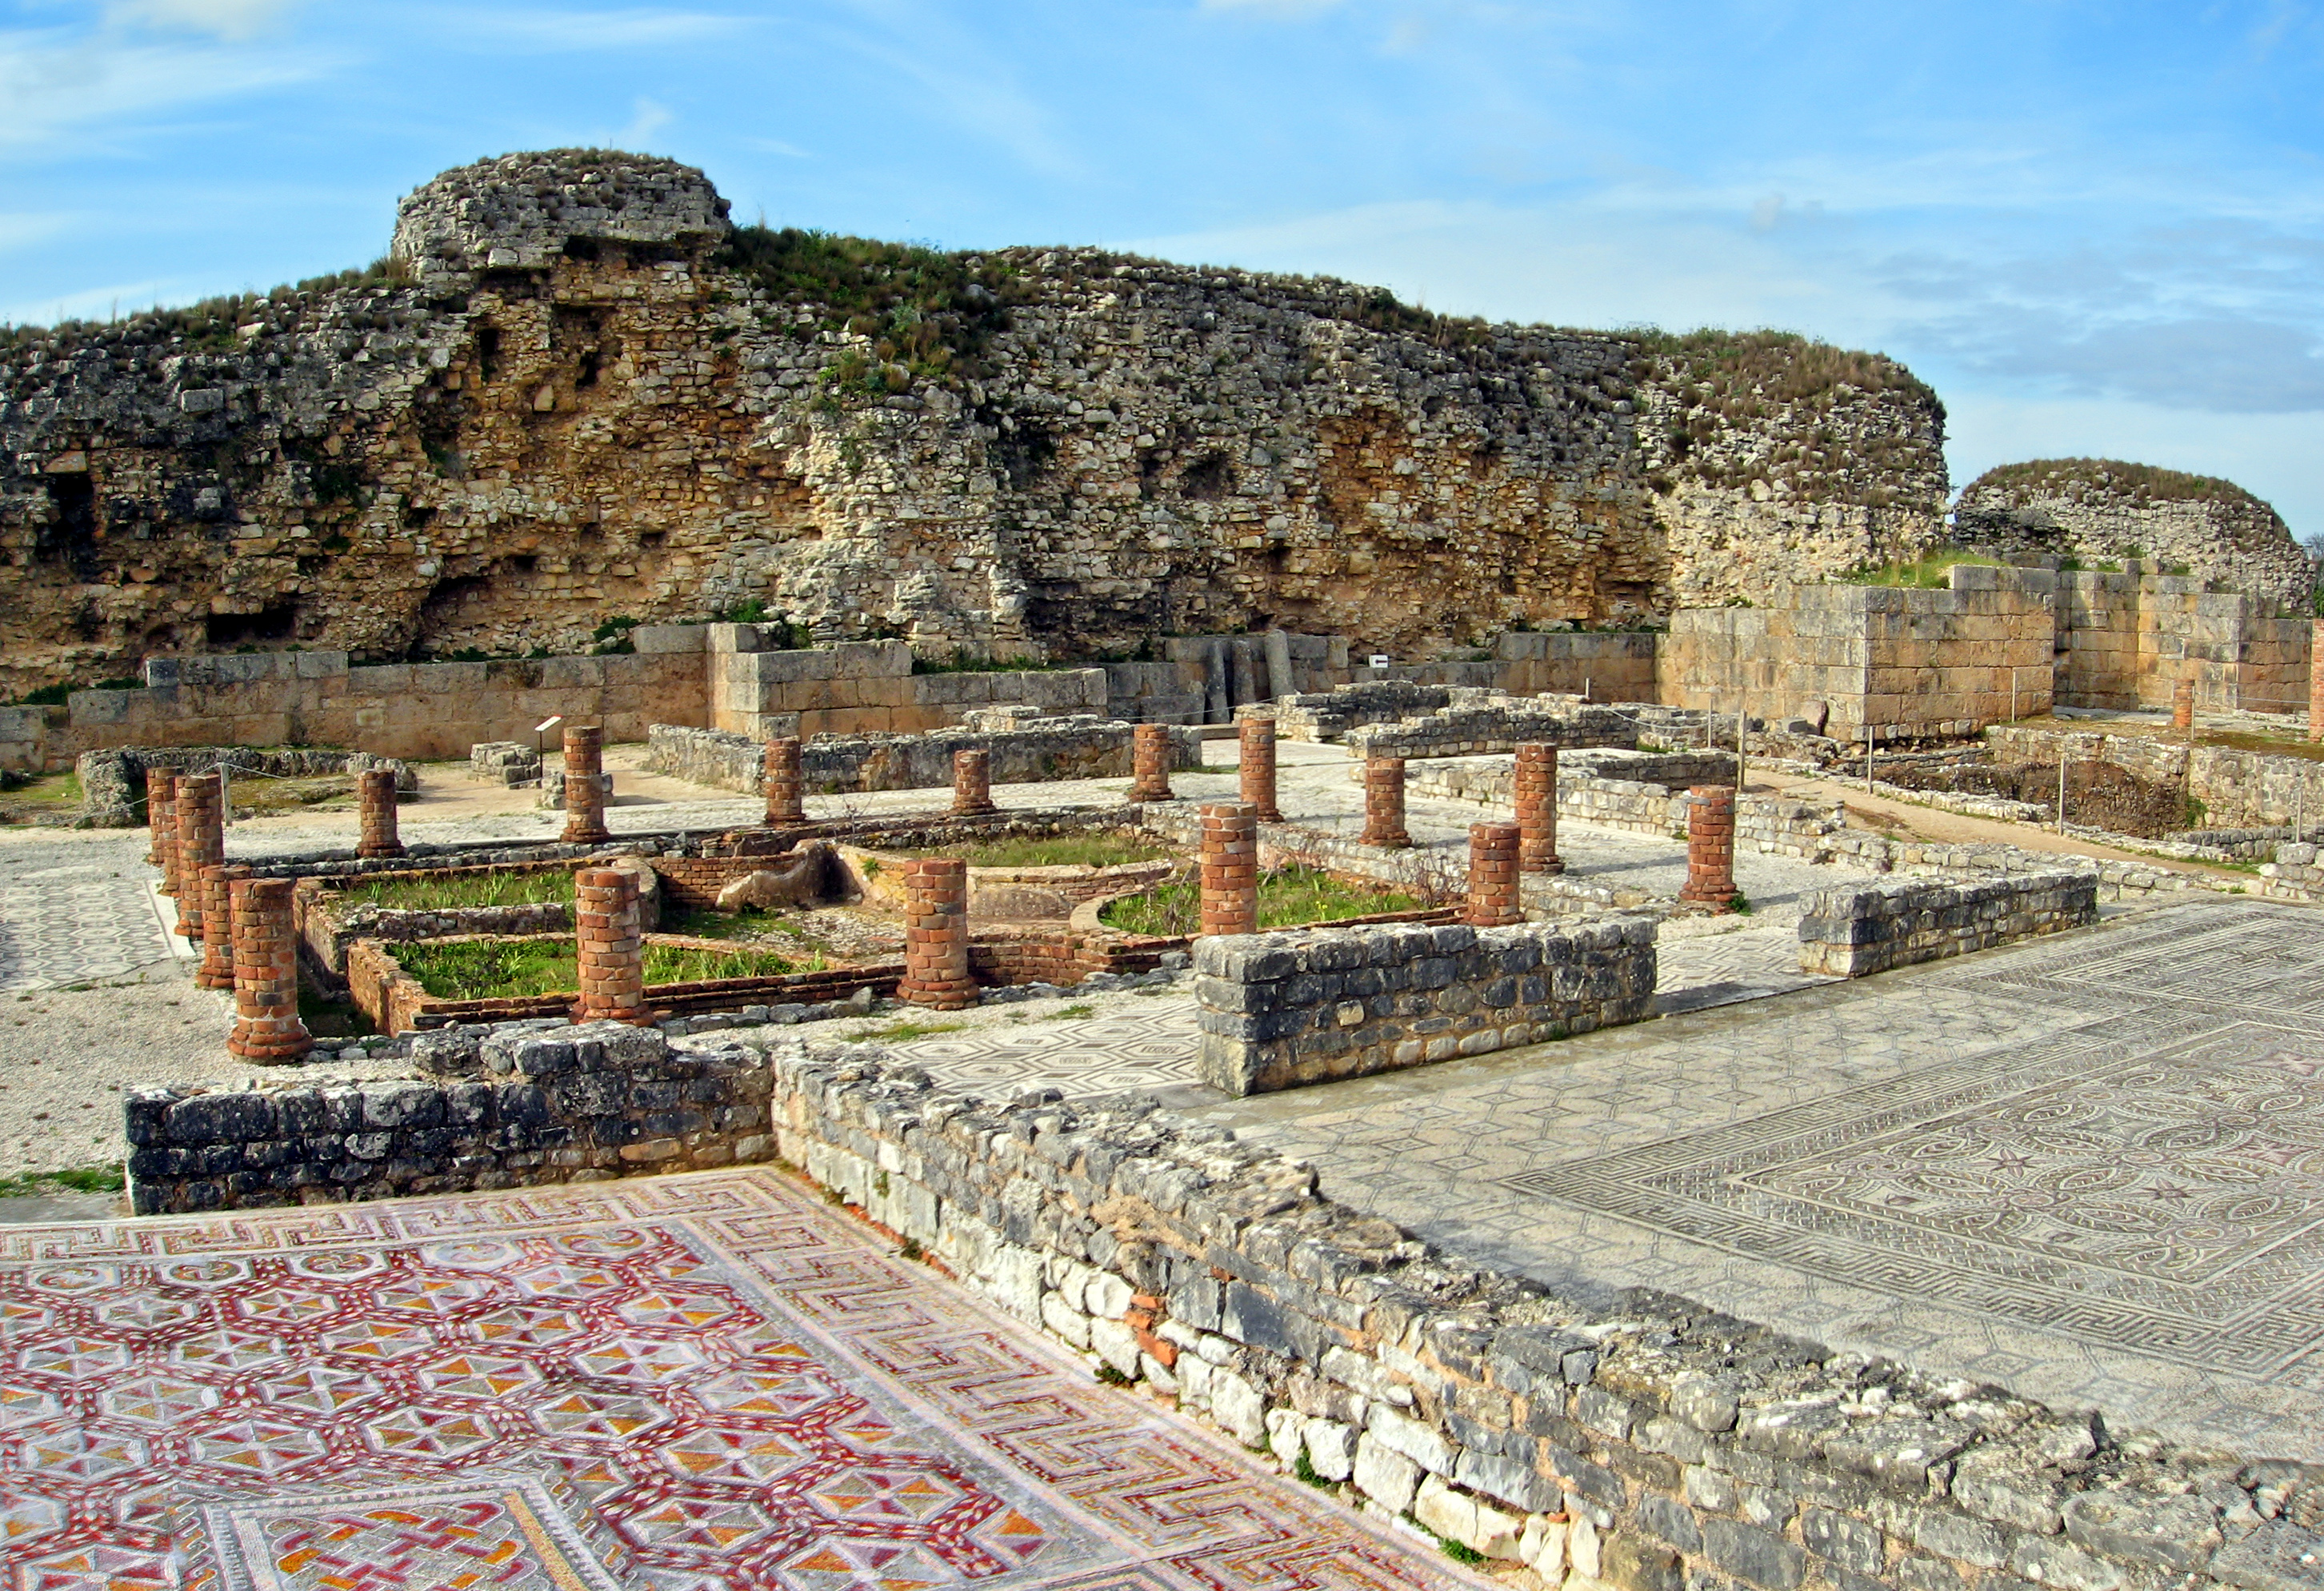 Mosaic tiles surrounding ruins at Conimbriga